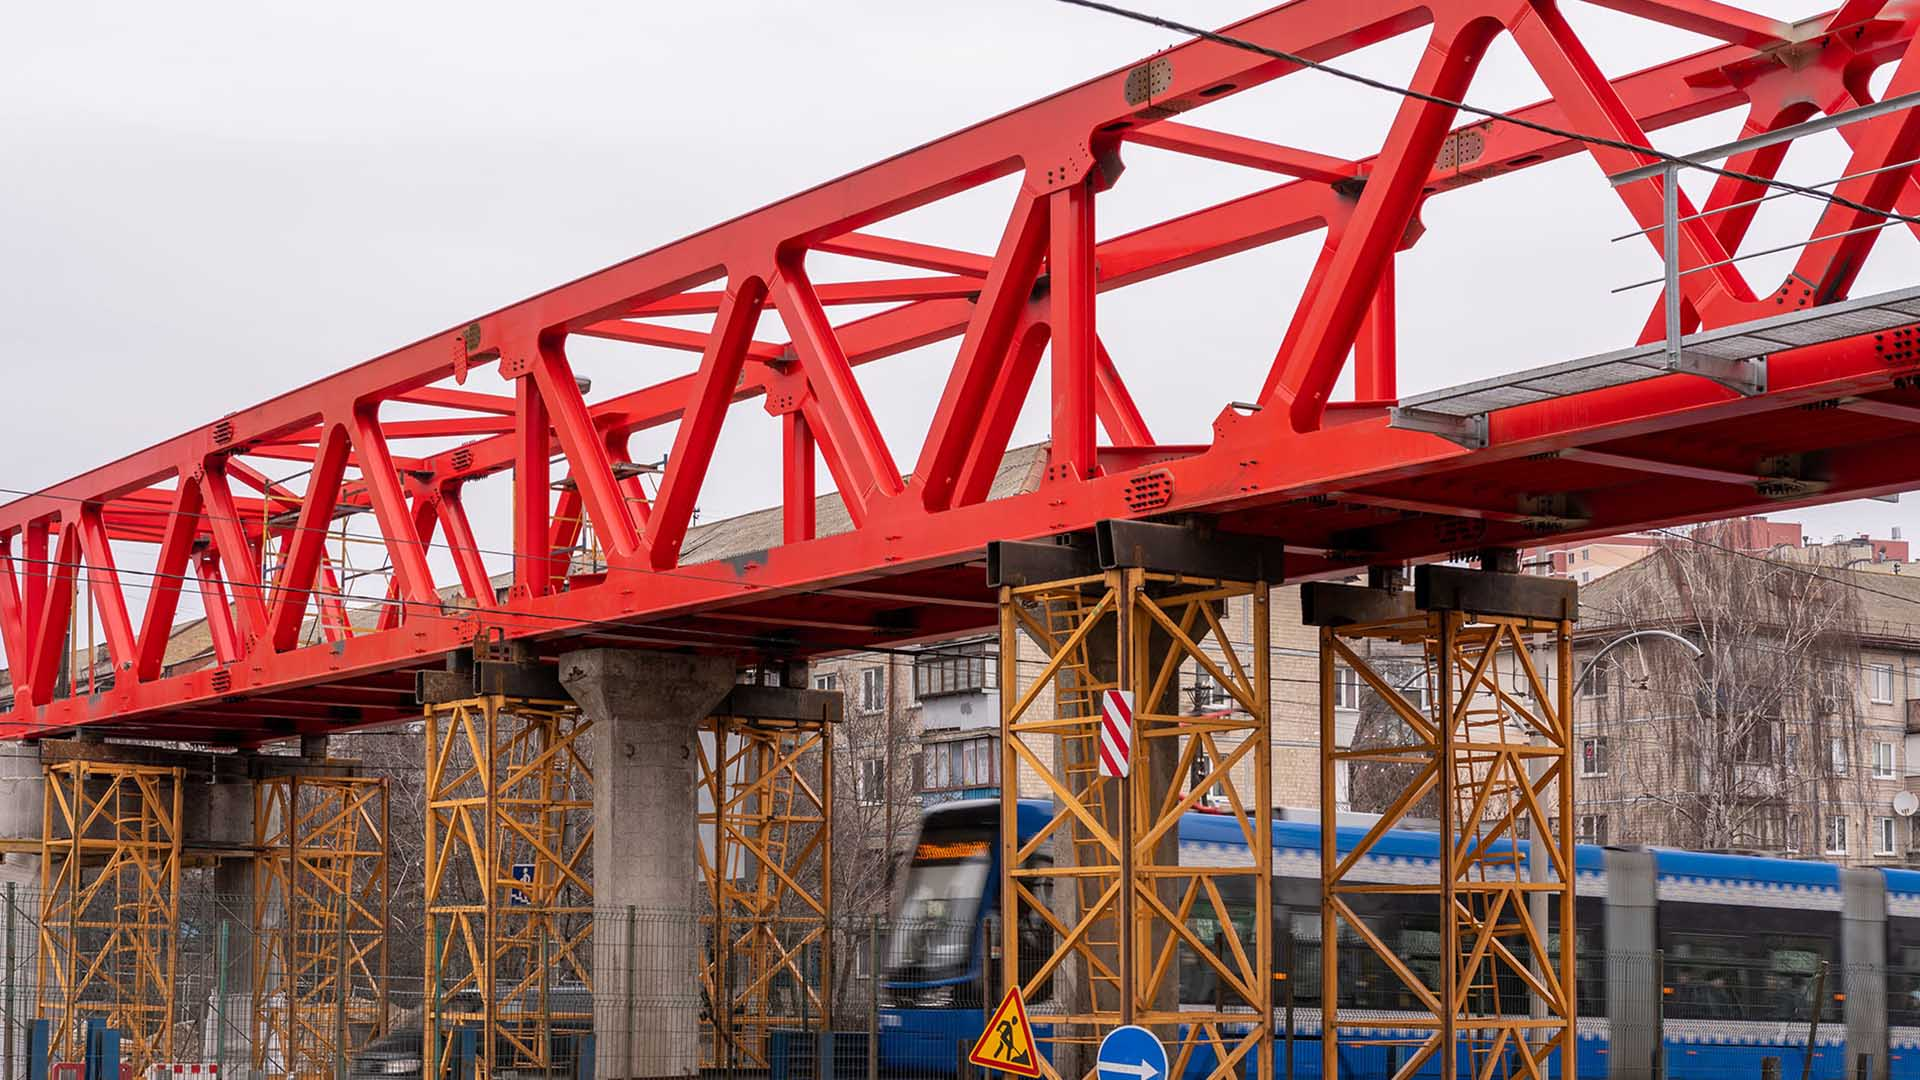 Bridges and transport solutions